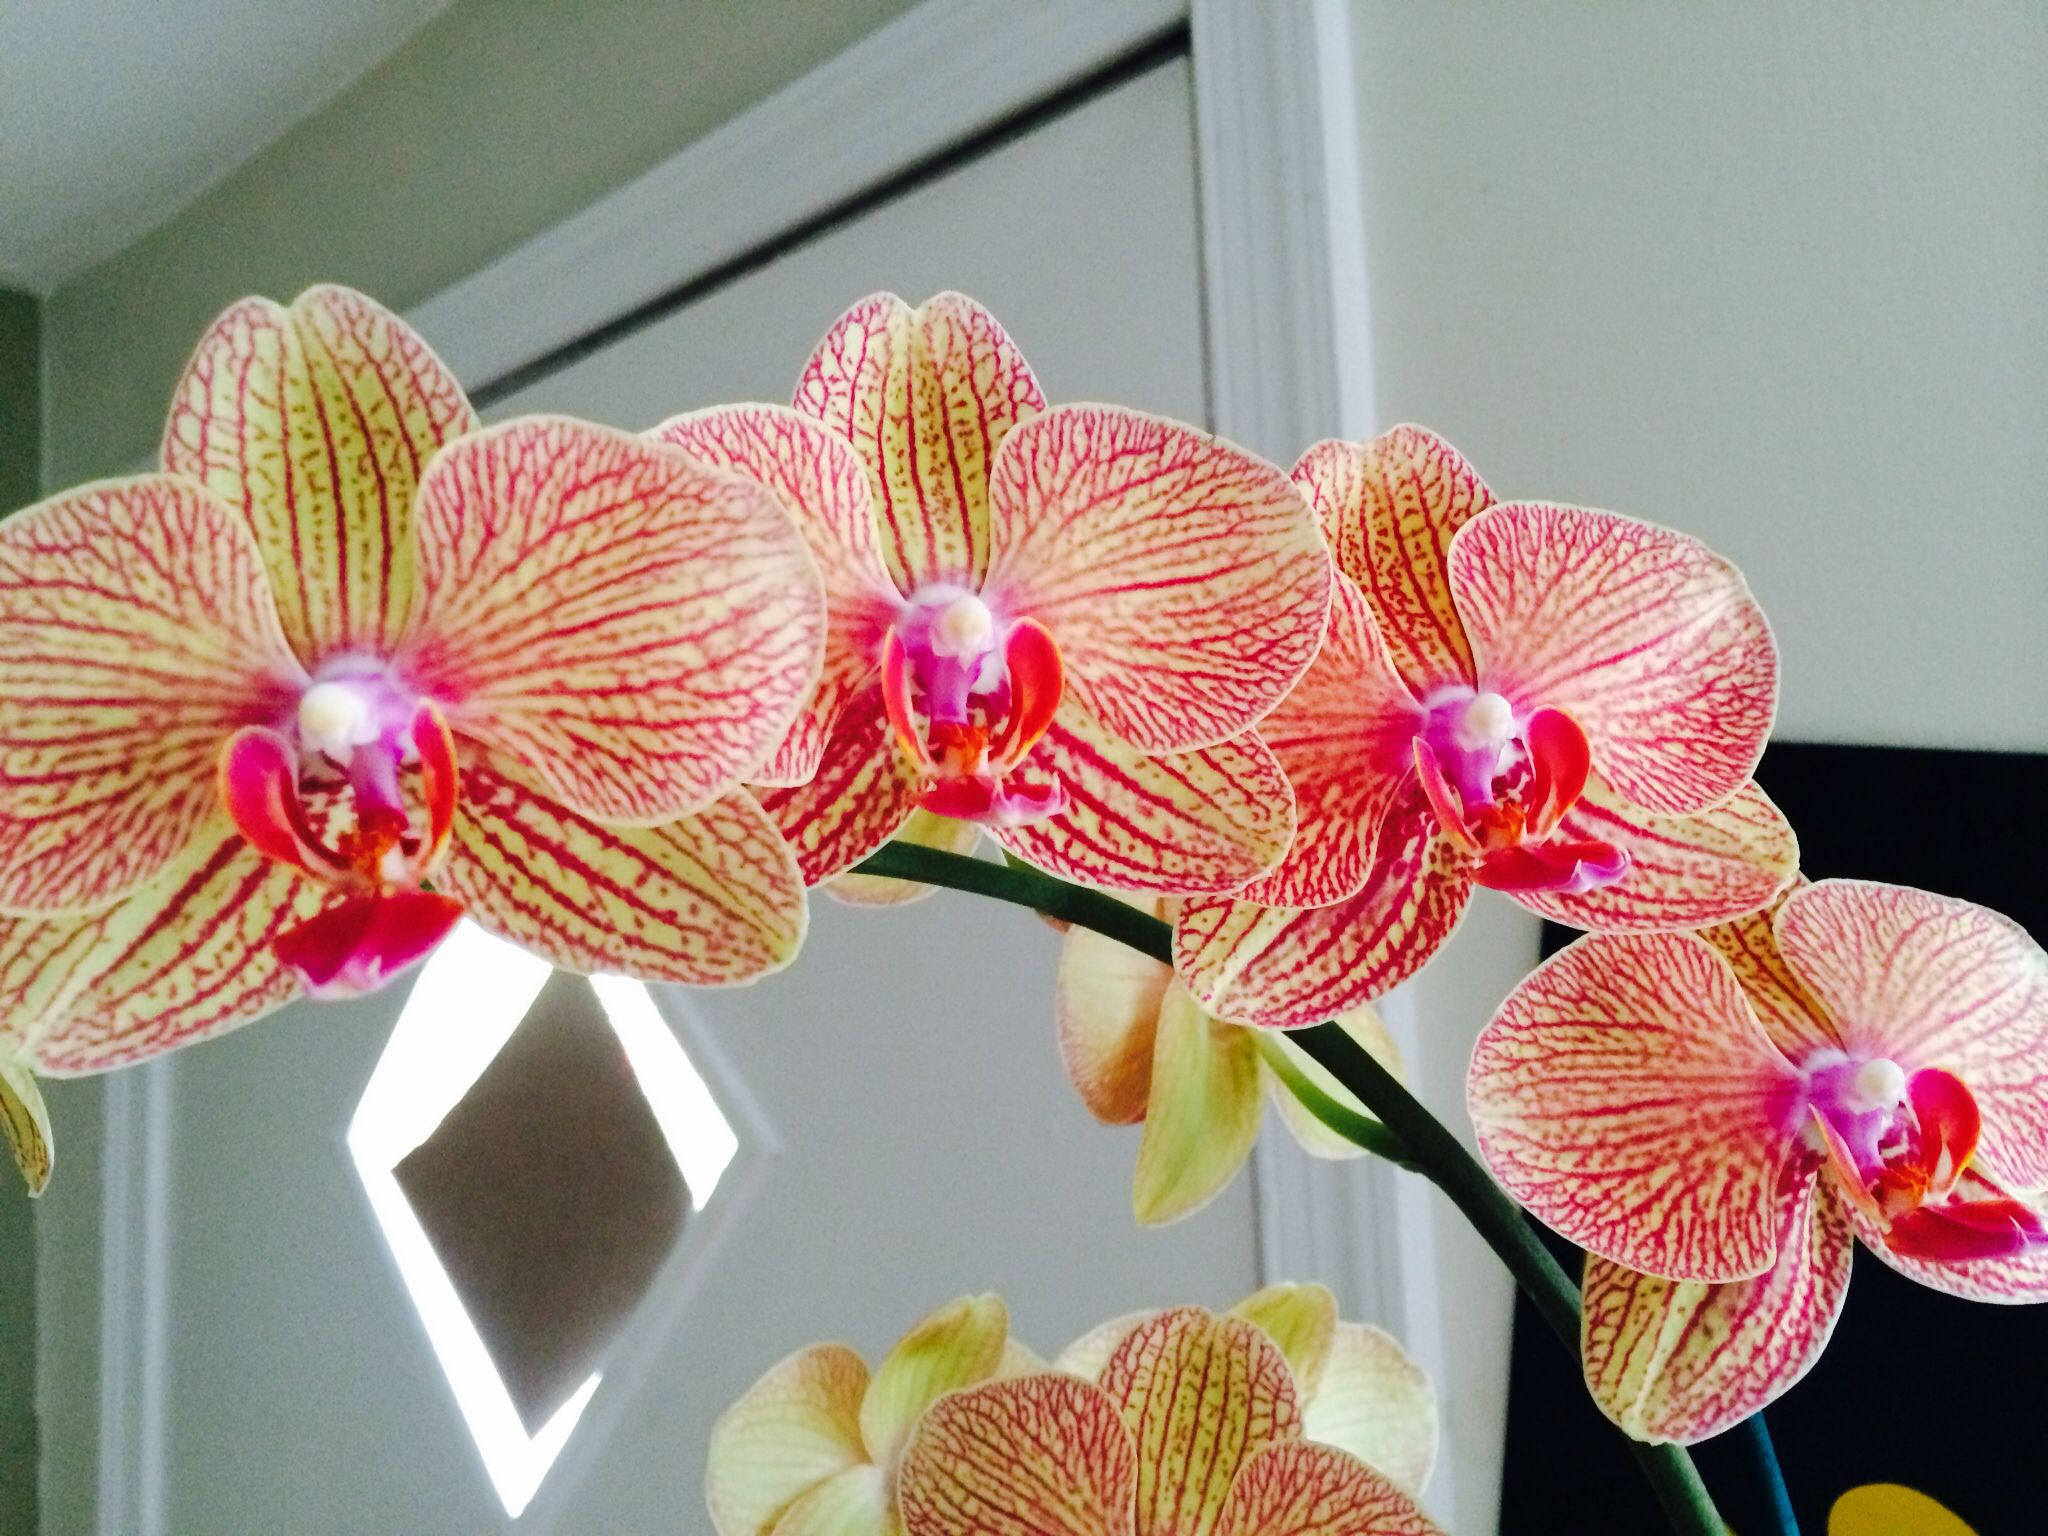 This is my orchid itus a phalaenopsis and it is in full bloom my